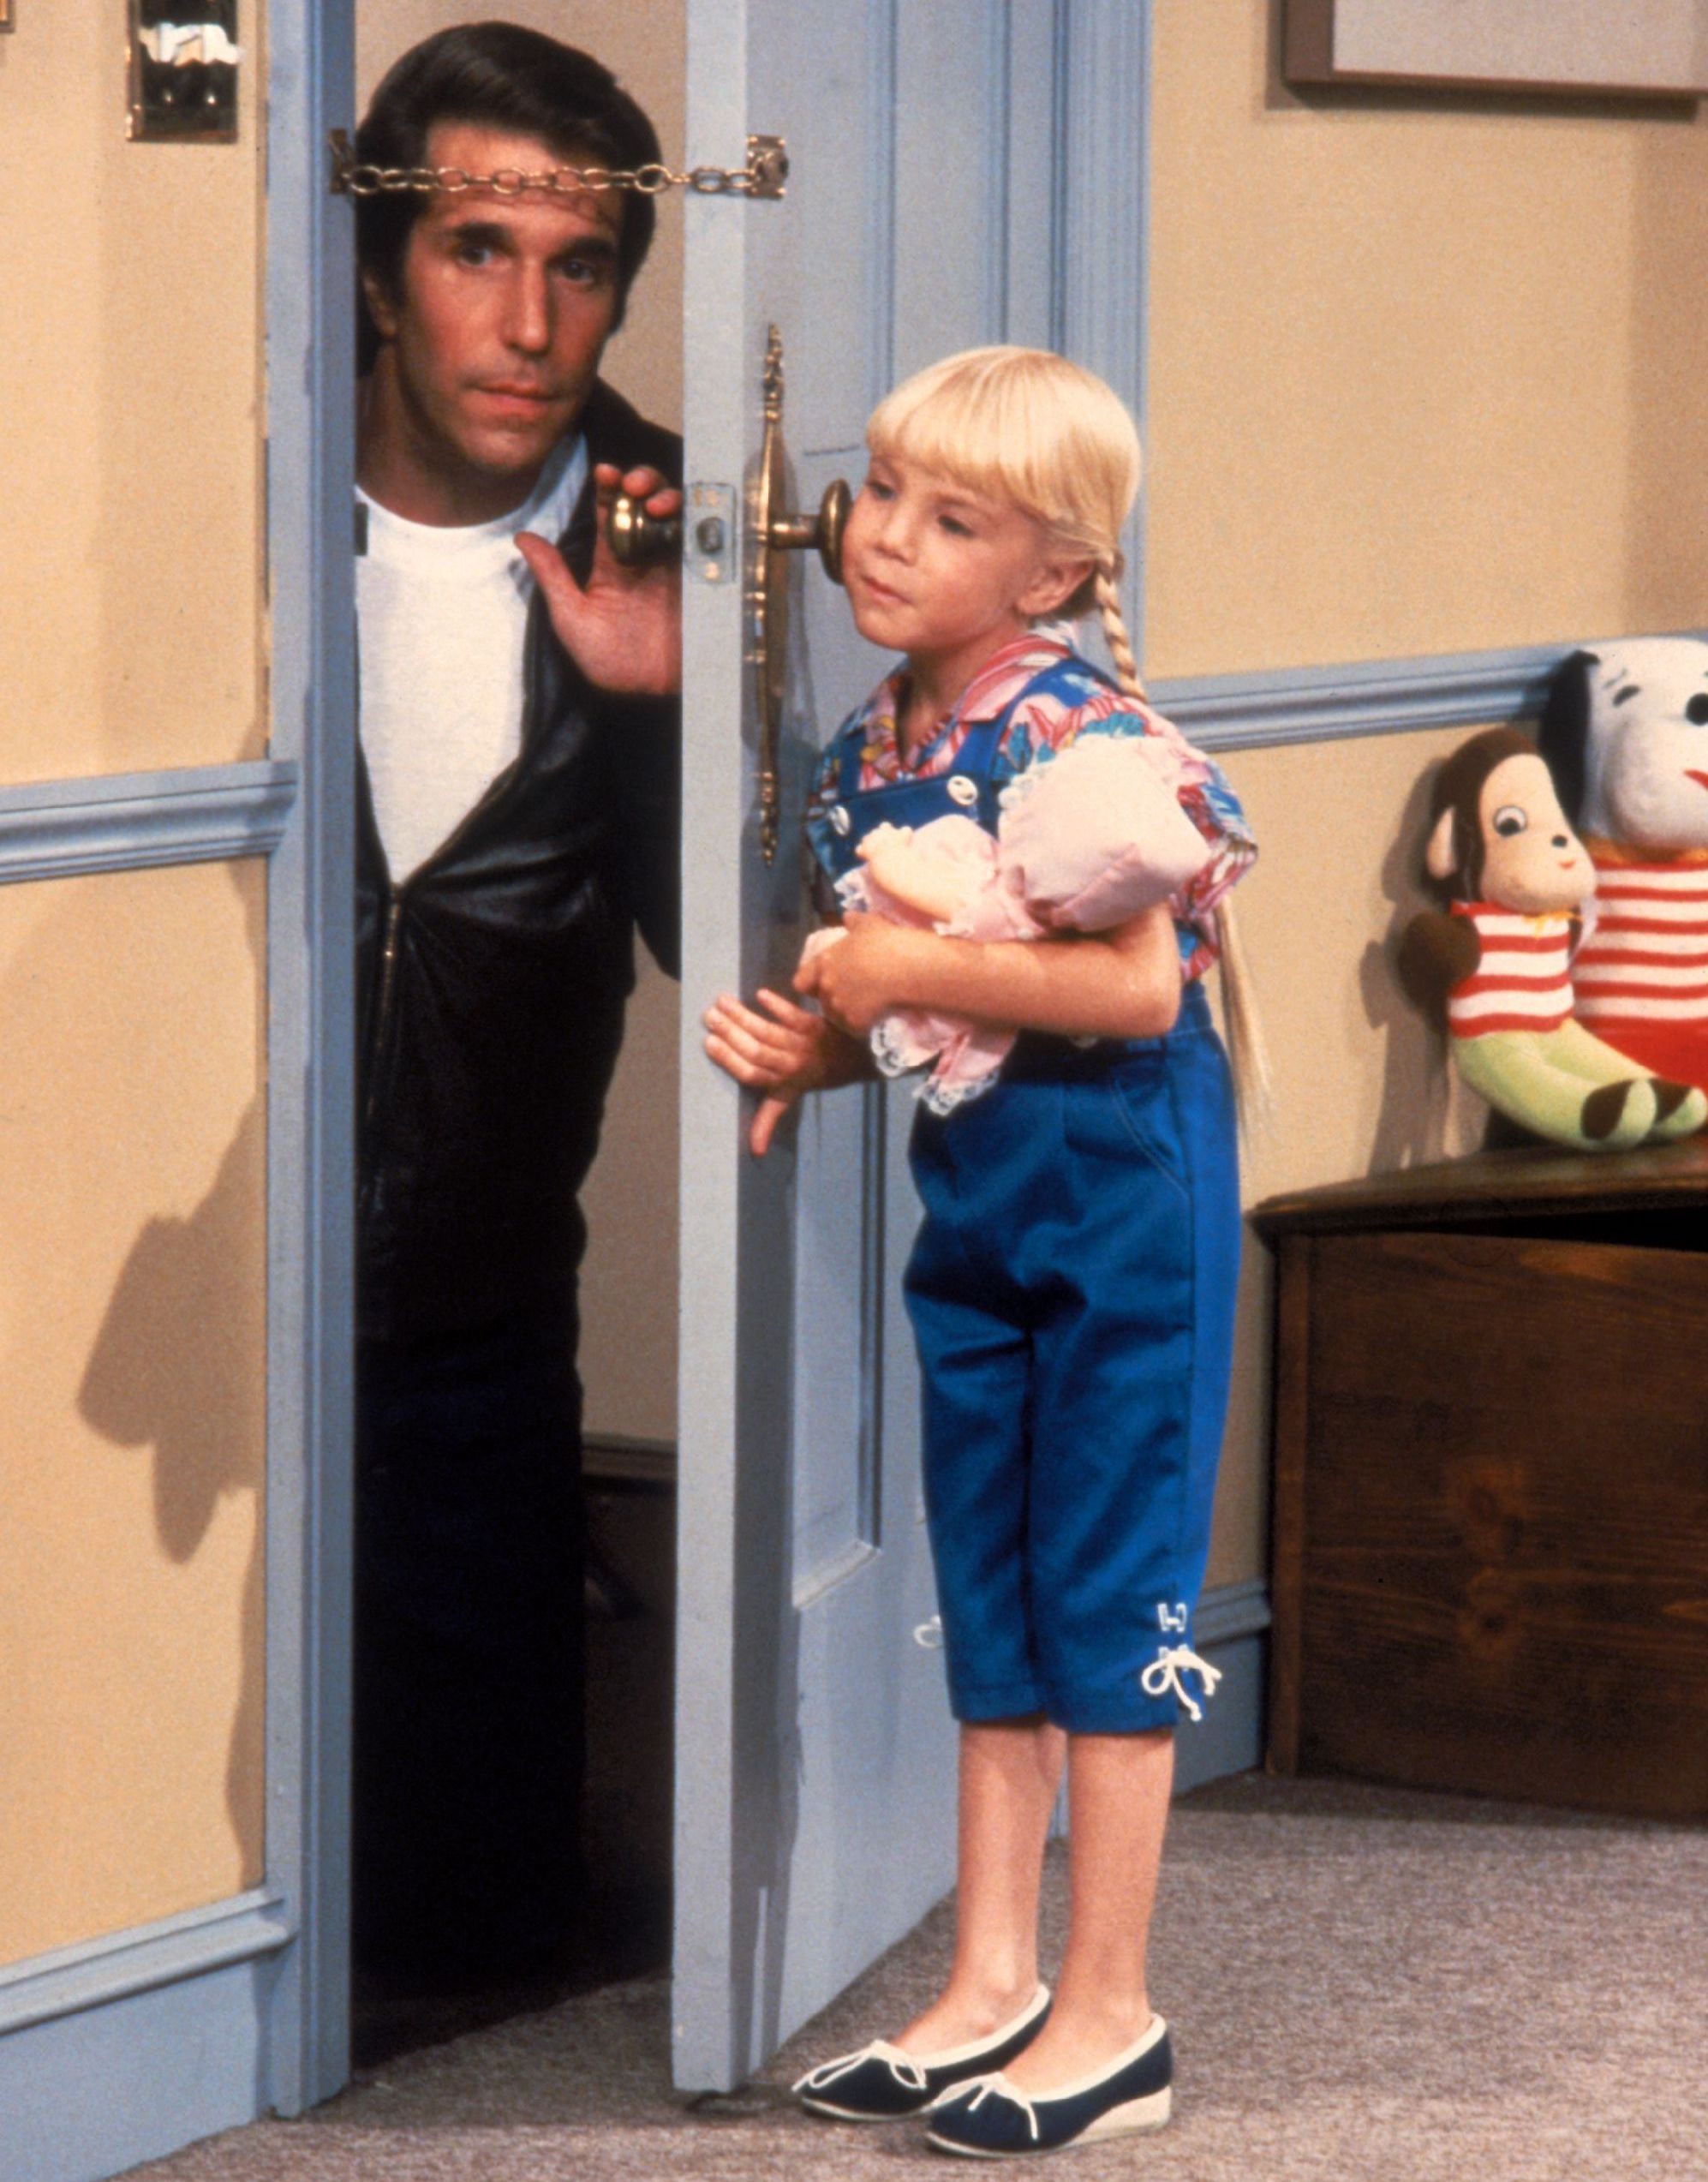 Heather O'Rourke as Heather Pfister in Happy Days 1982